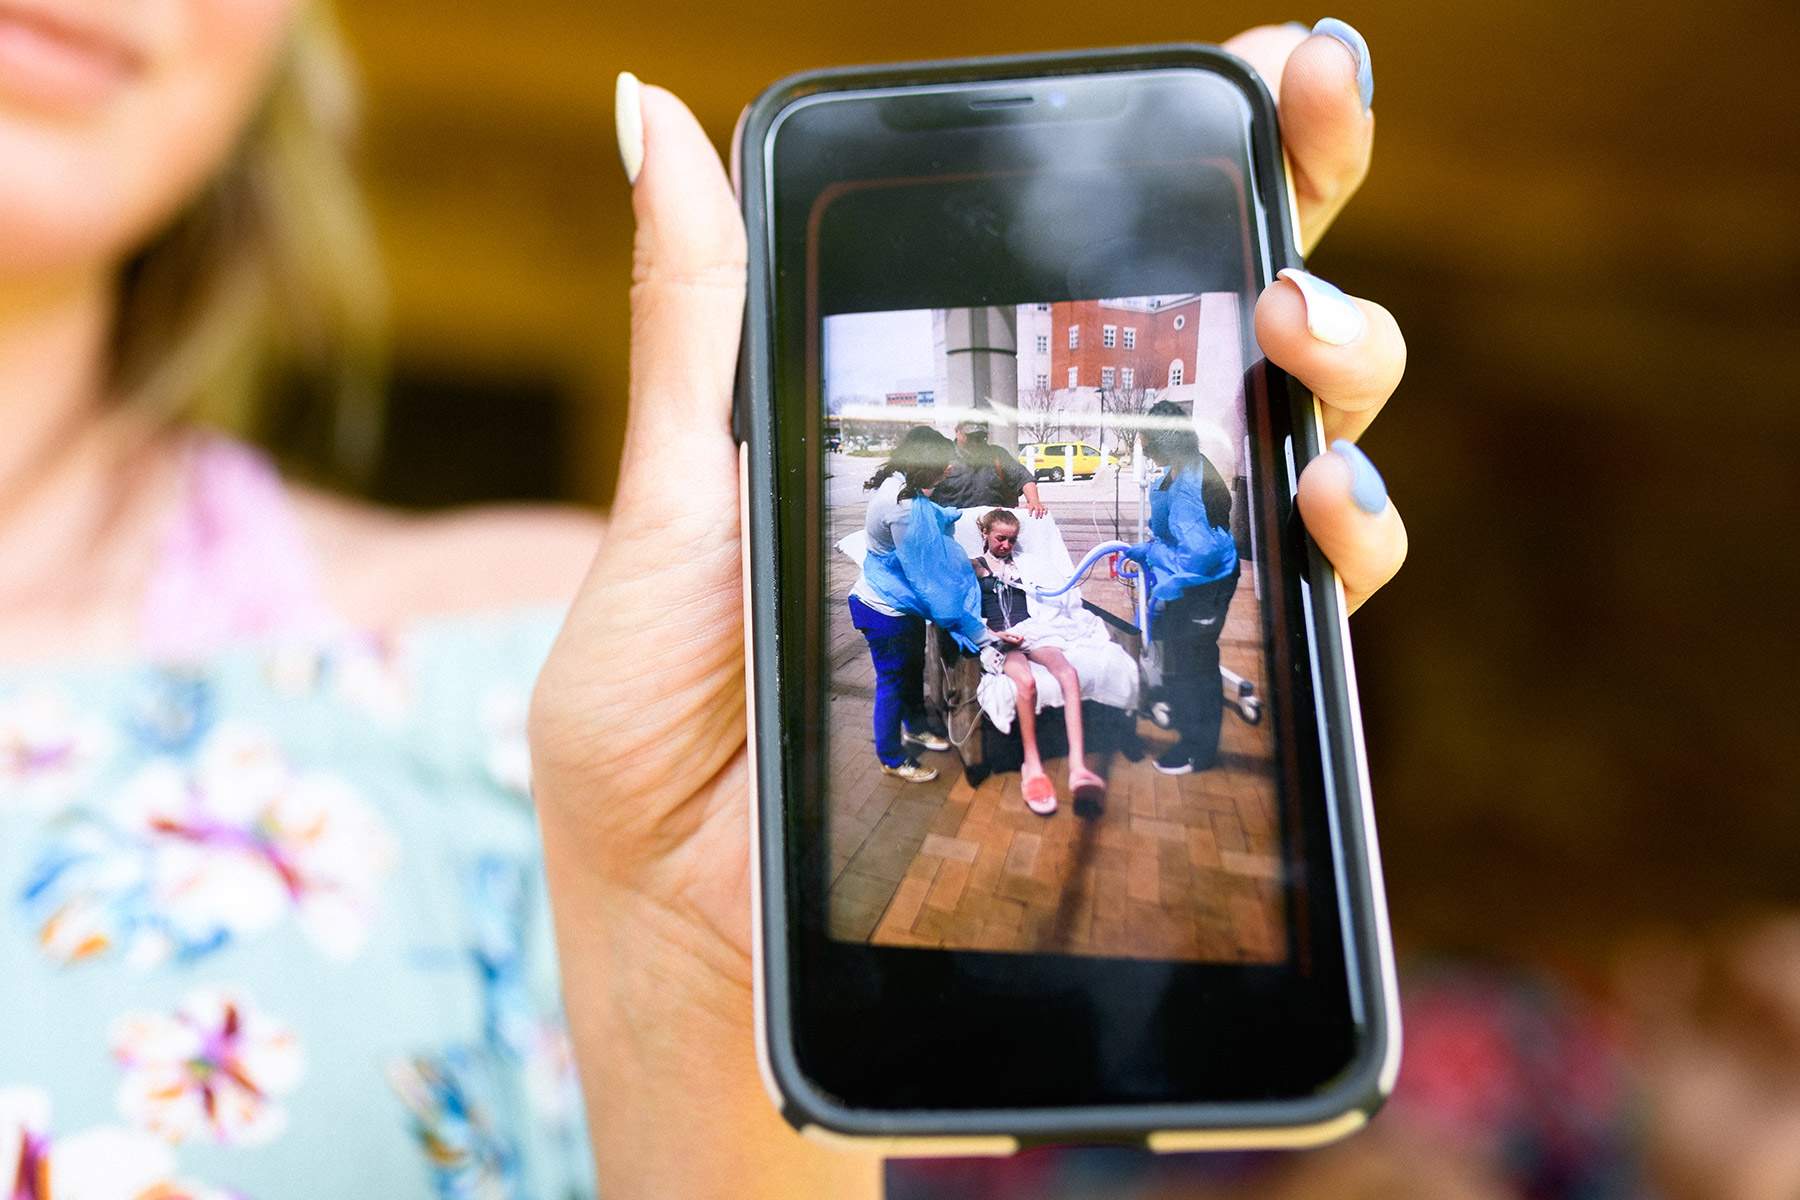 Breanna shows a photo on her phone of when she was being wheeled into the hospital for a lung transplant.